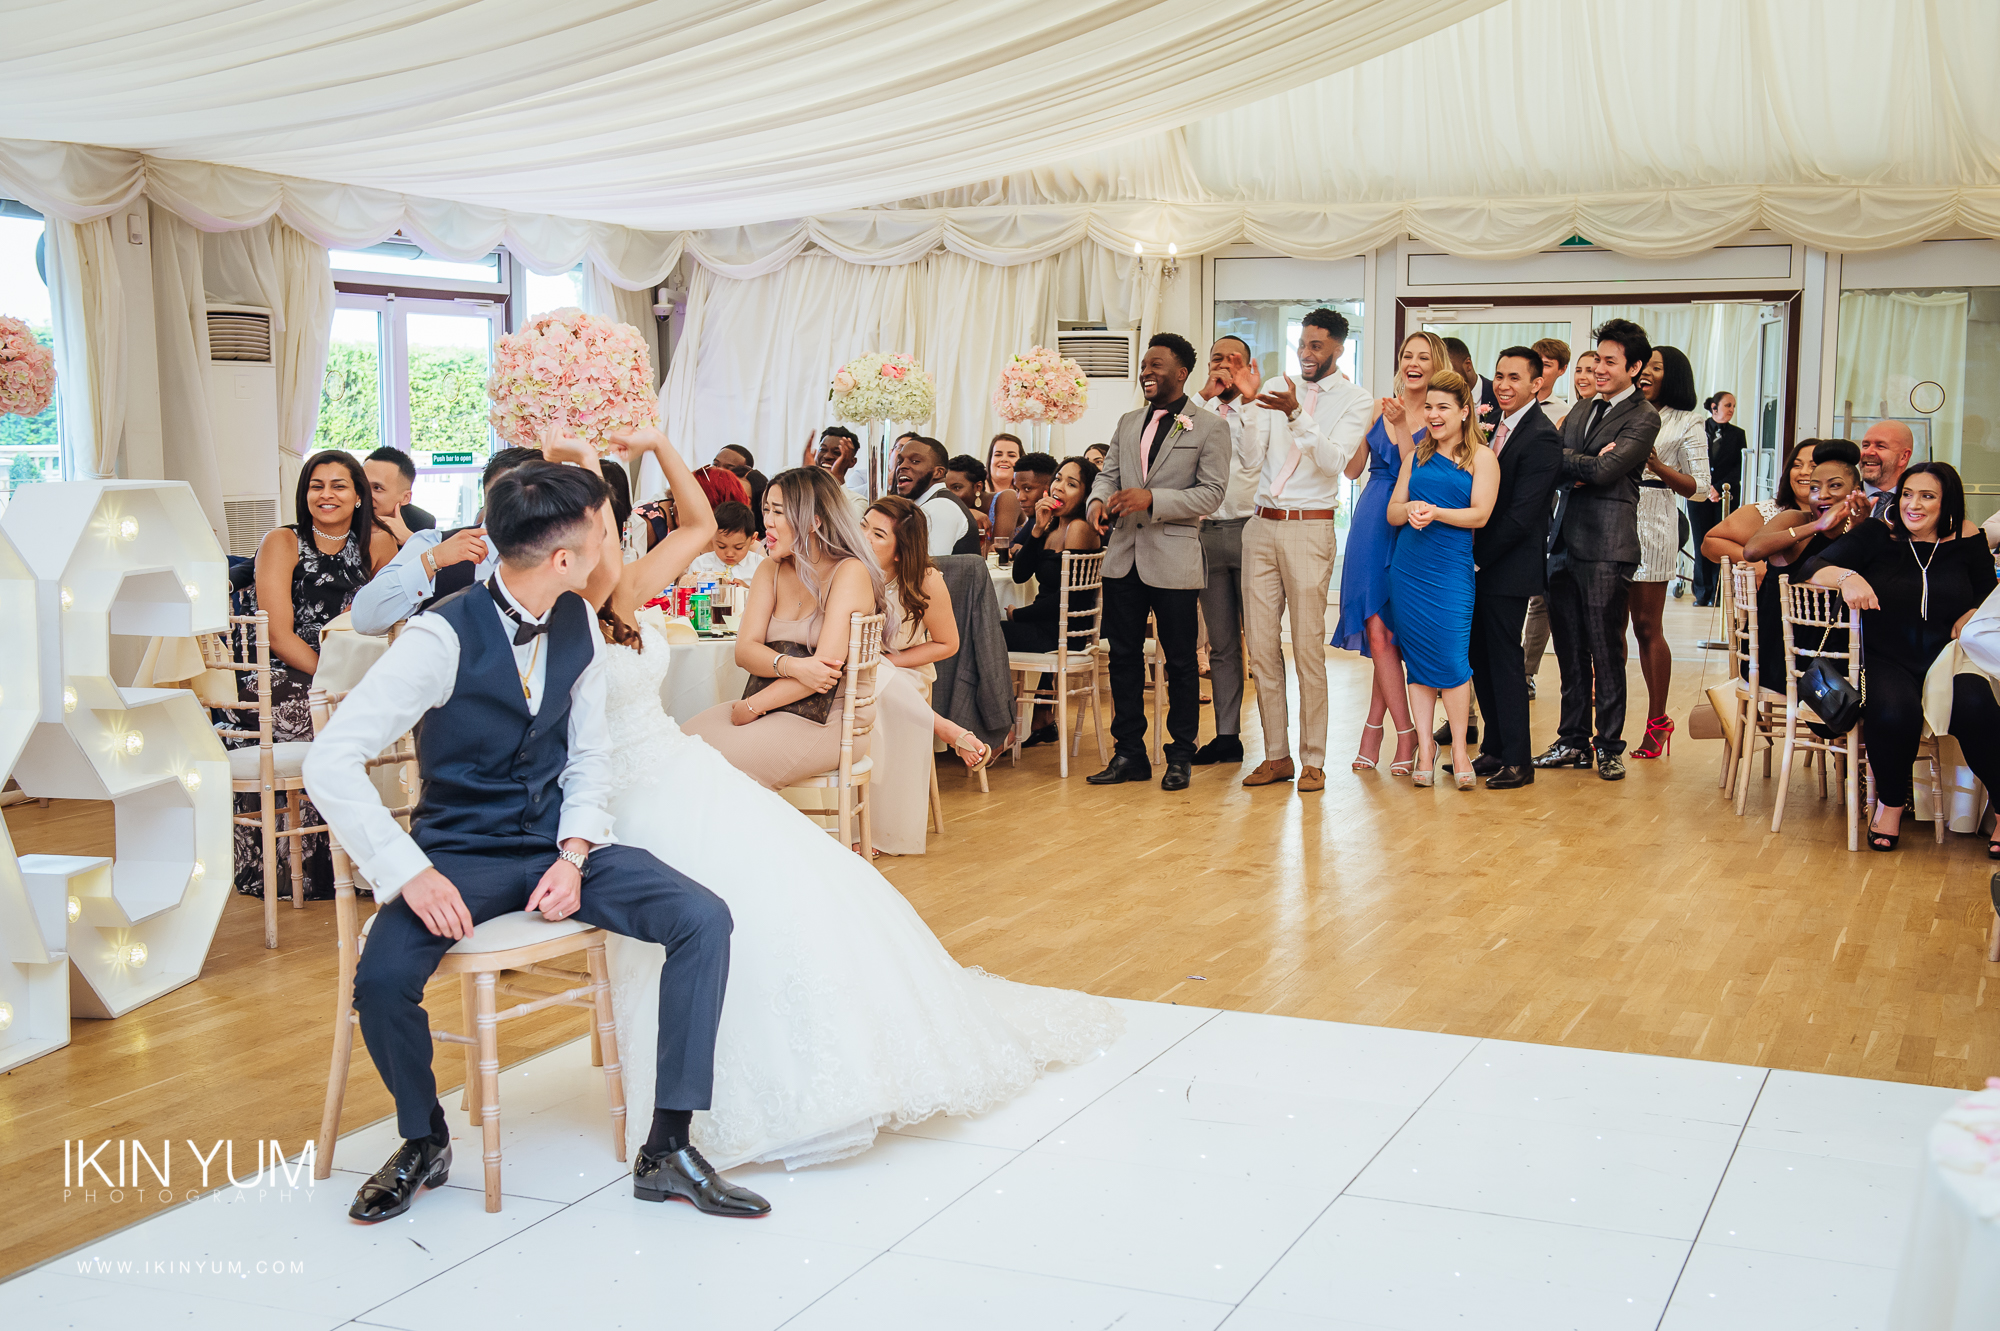 Hylands House Wedding - Ikin Yum Photography-116.jpg